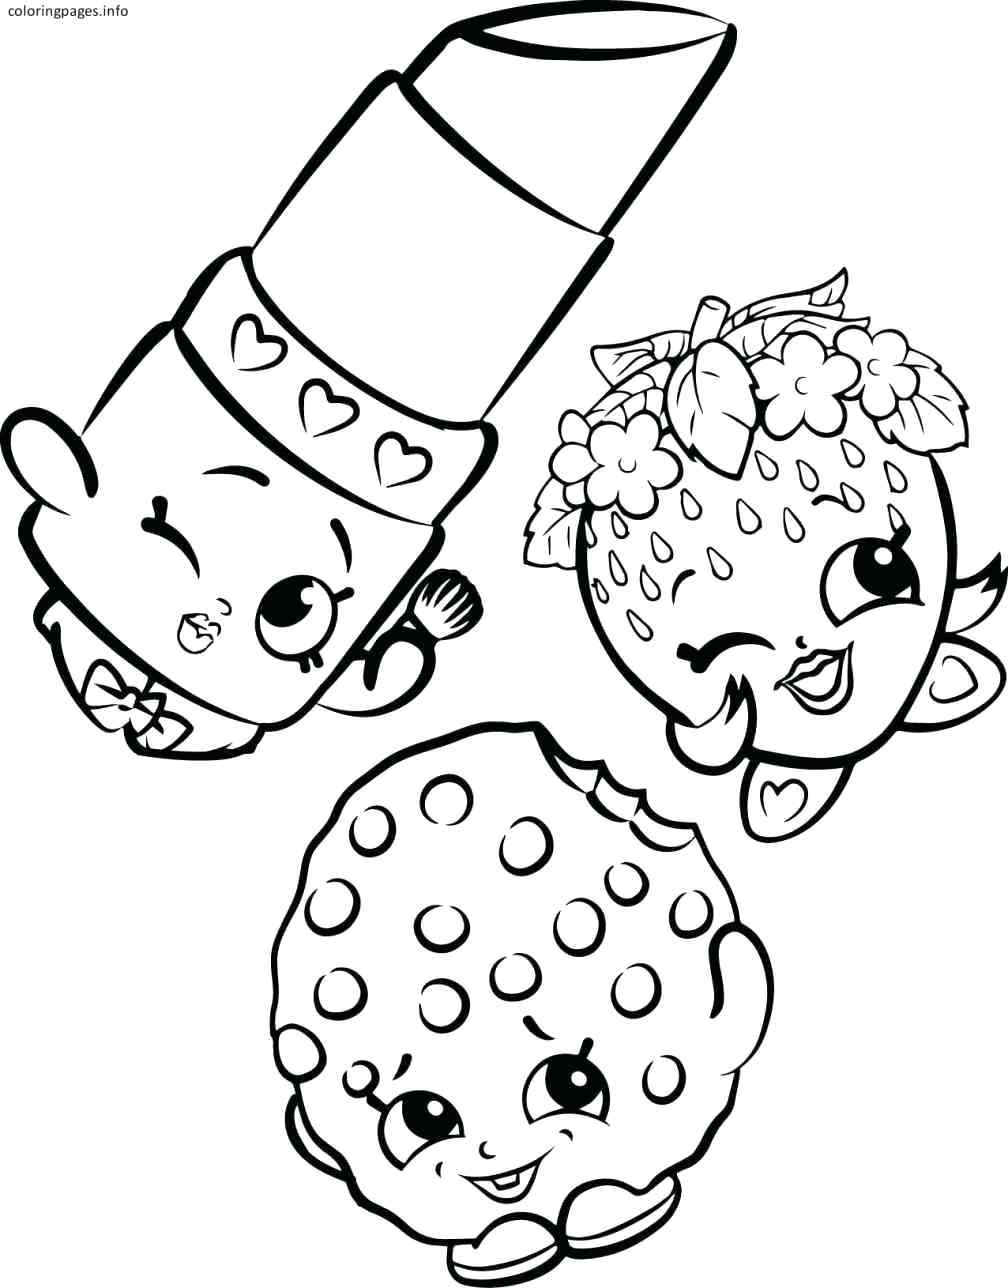 1008x1288 Coloring Pages Finding Nemo Coloring Pages Finding Nemo Coloring